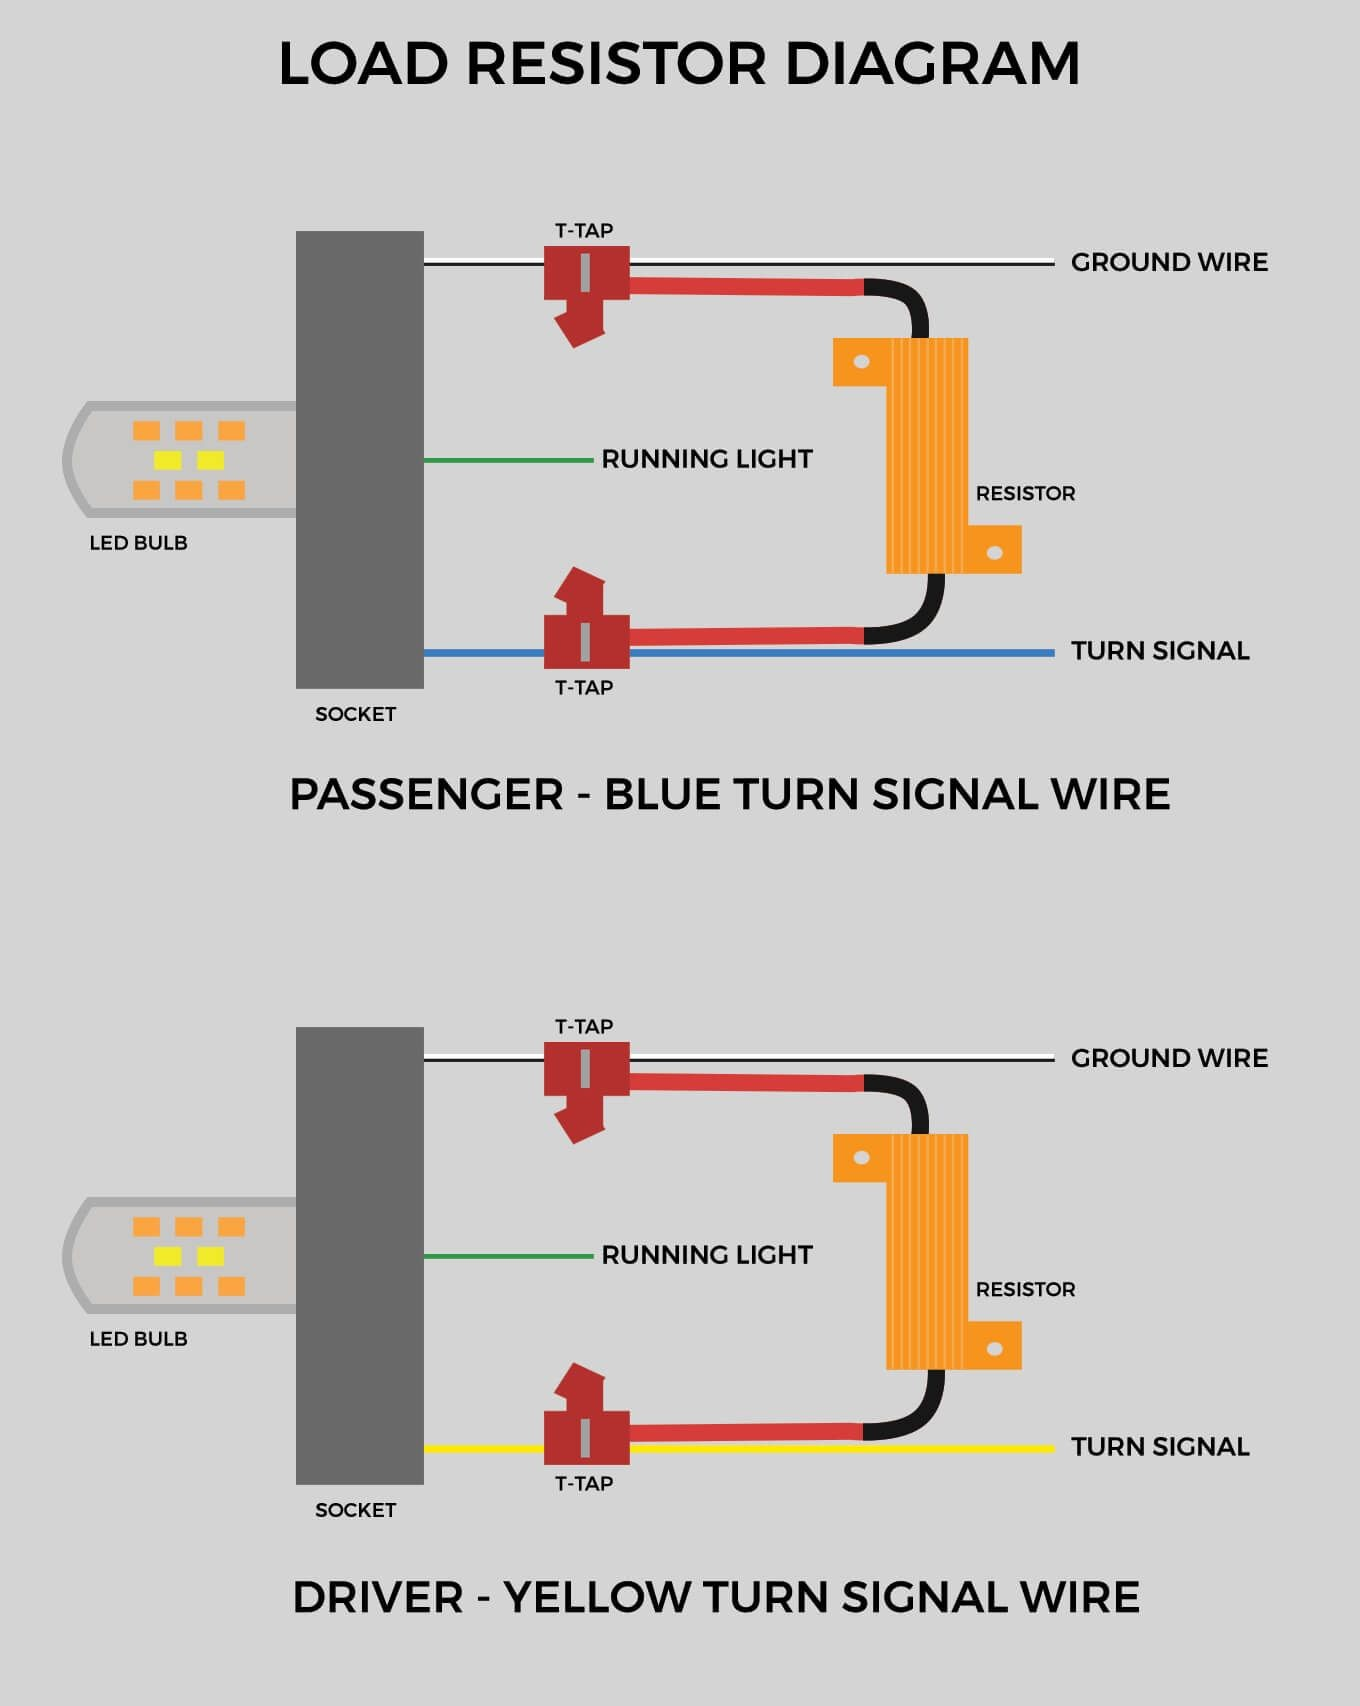 Turn Signal Flasher Wiring Diagram Turn Signal Light Wiring Diagram Wiring Diagram Paper Of Turn Signal Flasher Wiring Diagram Turn Signal Wiring Diagrams Wiring Diagrams Konsult